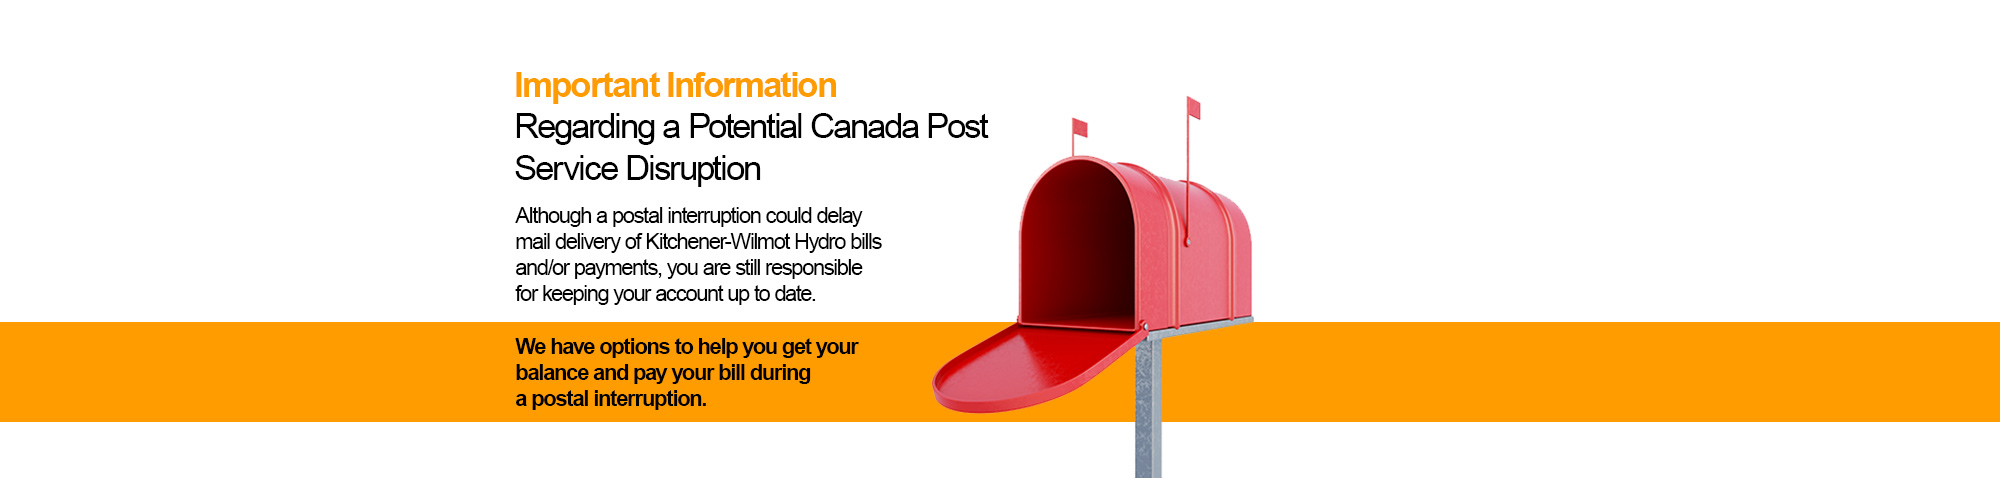 Canada Post Service Disruption Banner